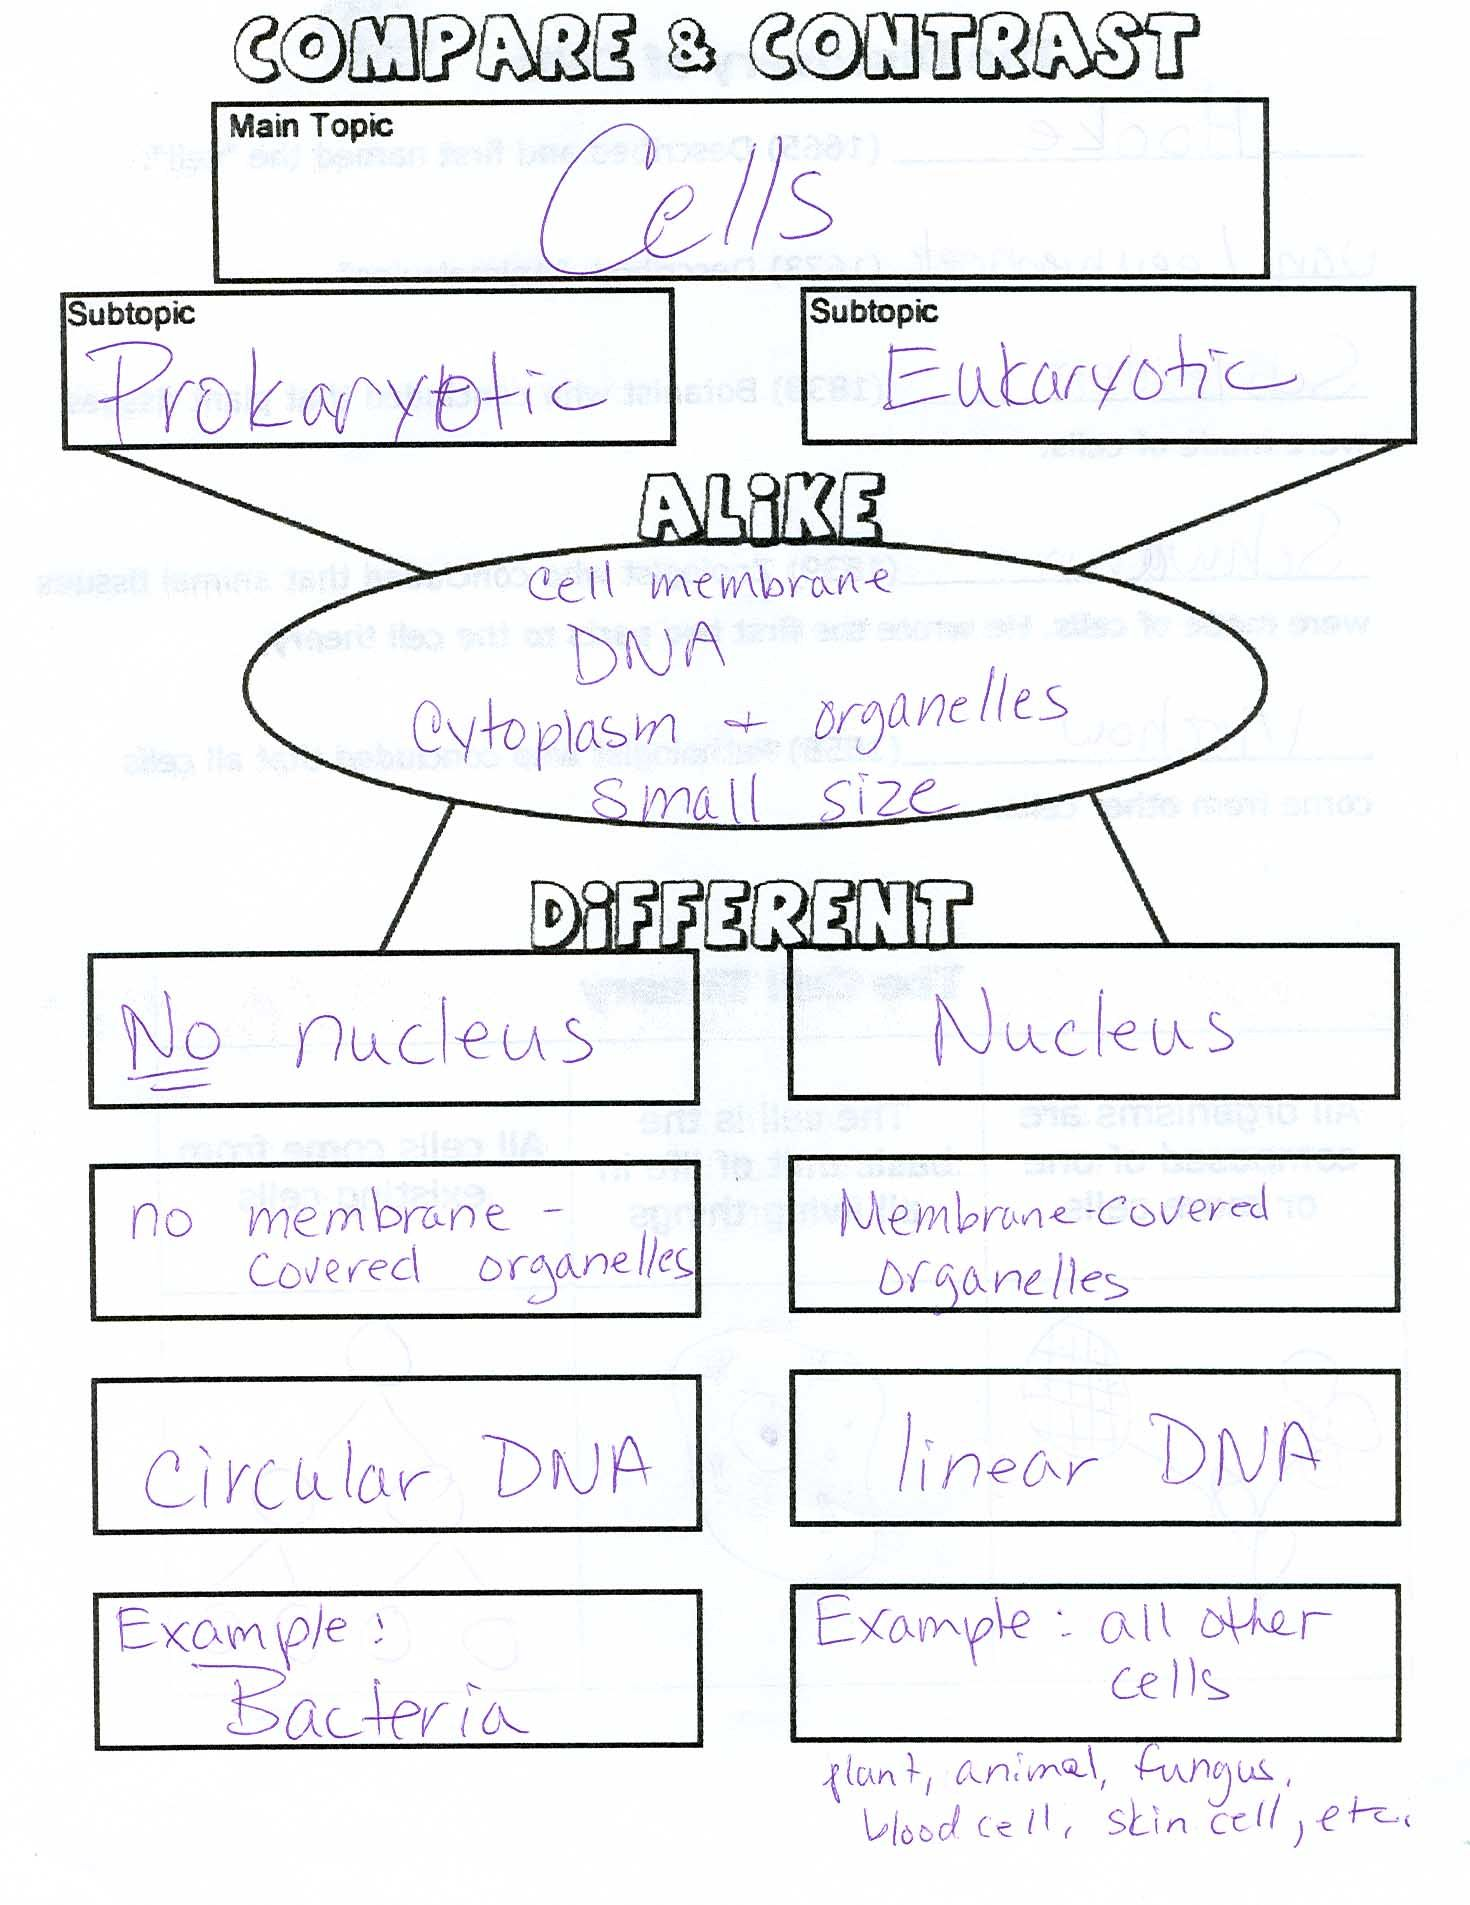 Worksheets Bill Nye Fossils Worksheet 100 bill nye evolution worksheet the science guy prokaryotic and eukaryotic cell cockpito